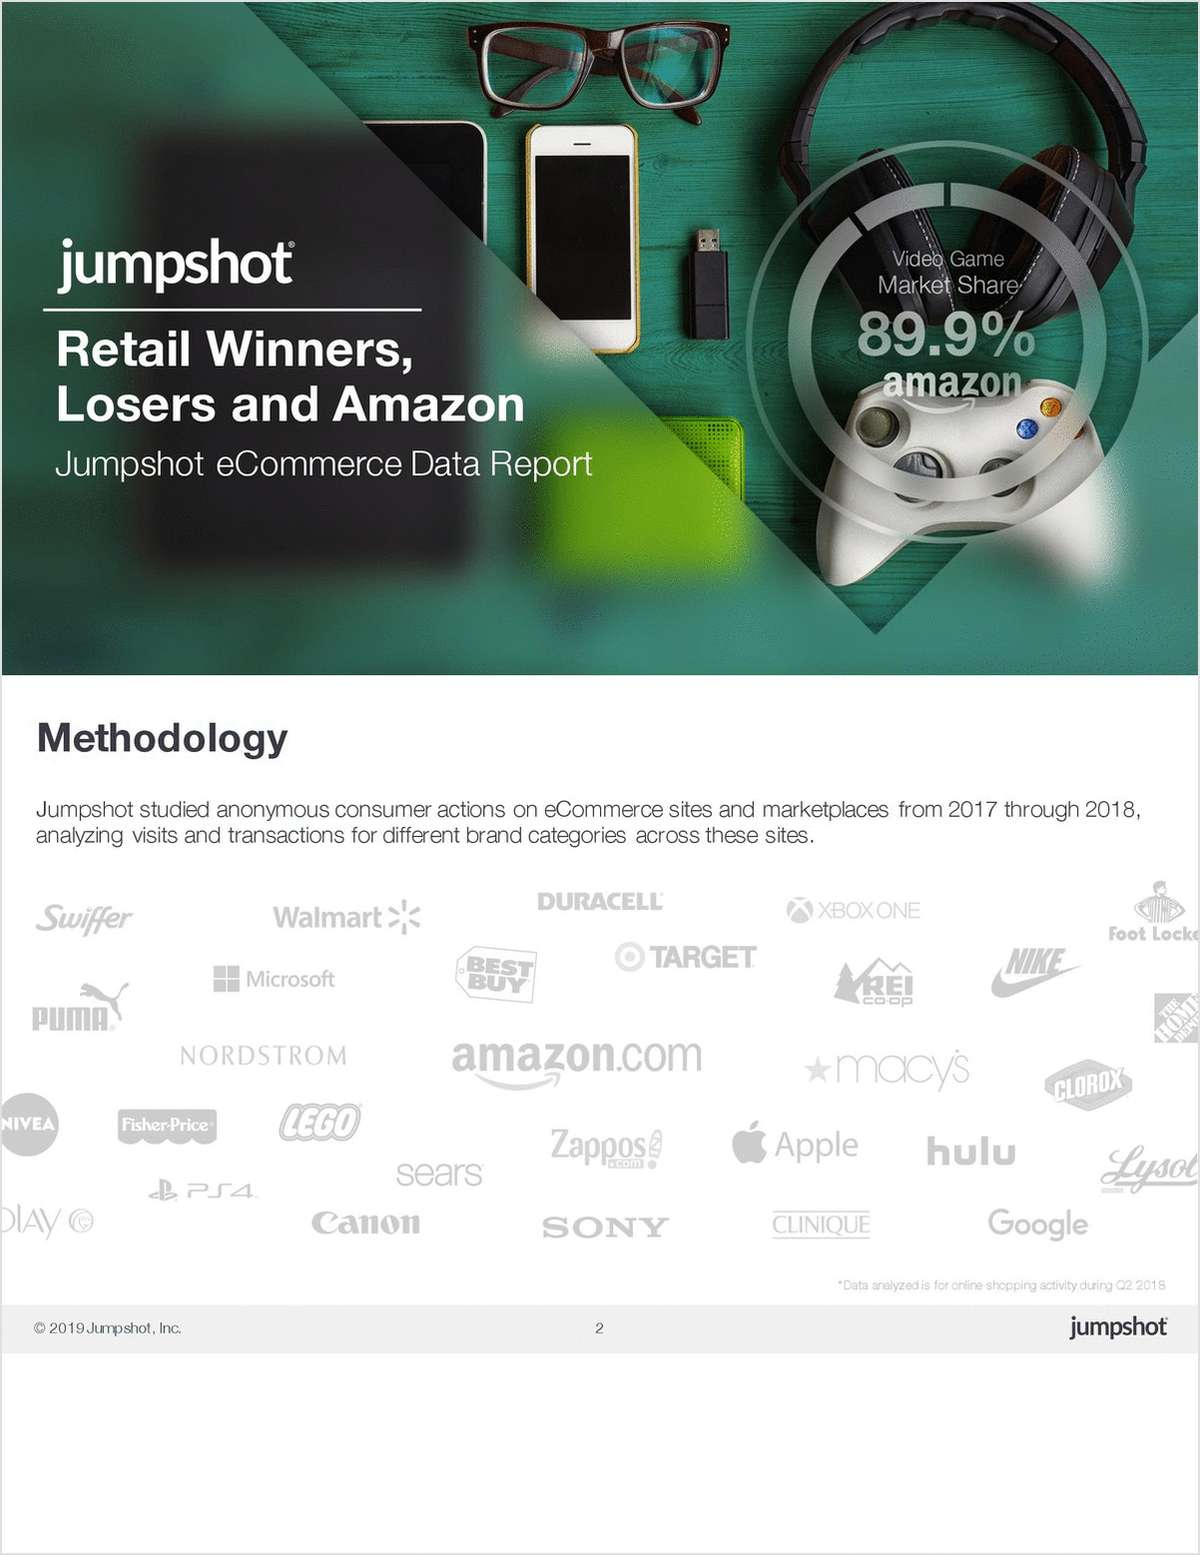 Retail Winners, Losers and Amazon: A Jumpshot eCommerce Data Report